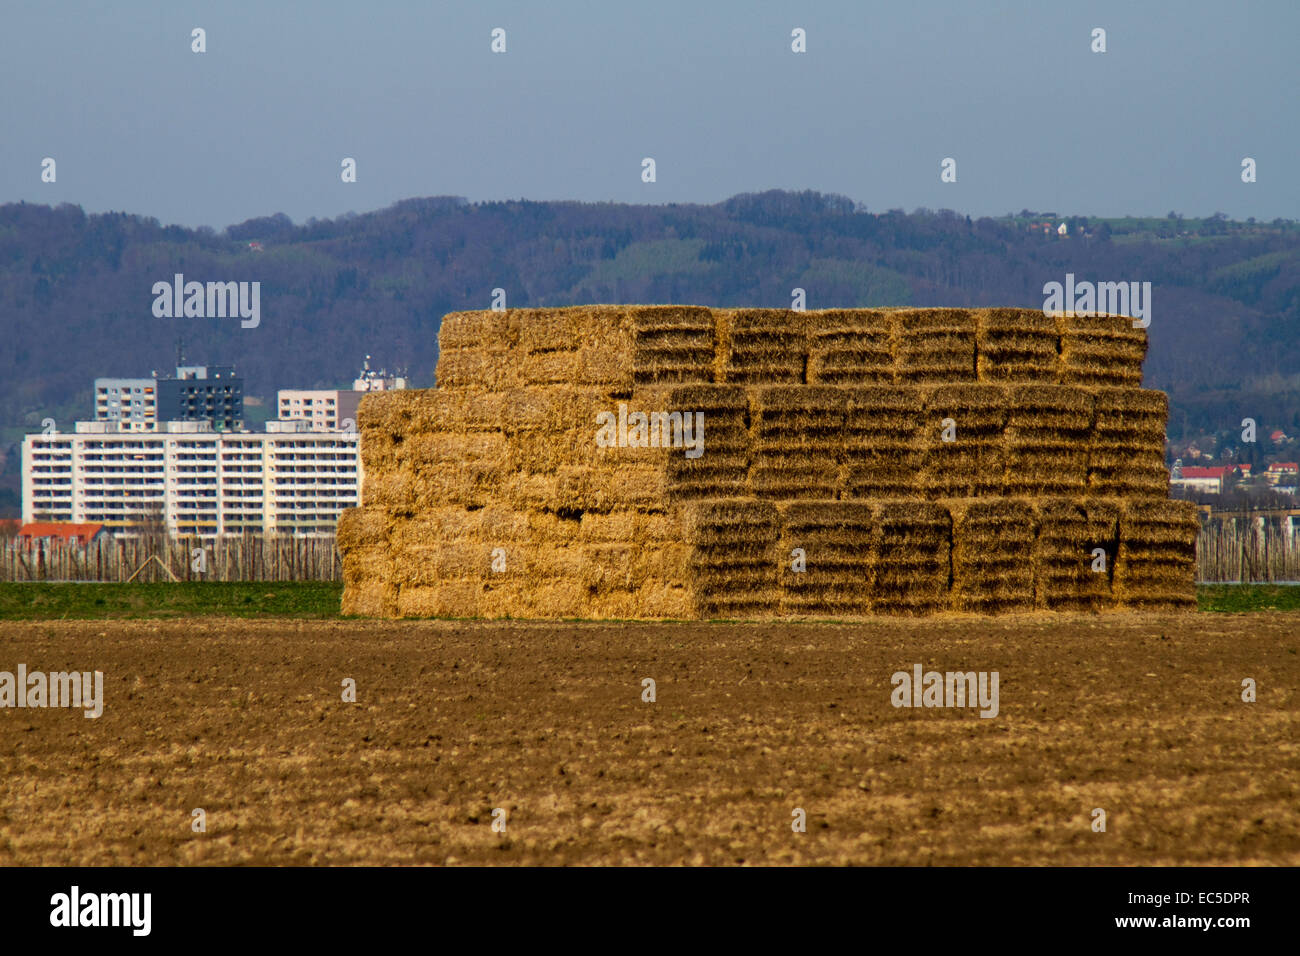 bales of straw on the outskirts of a city Stock Photo